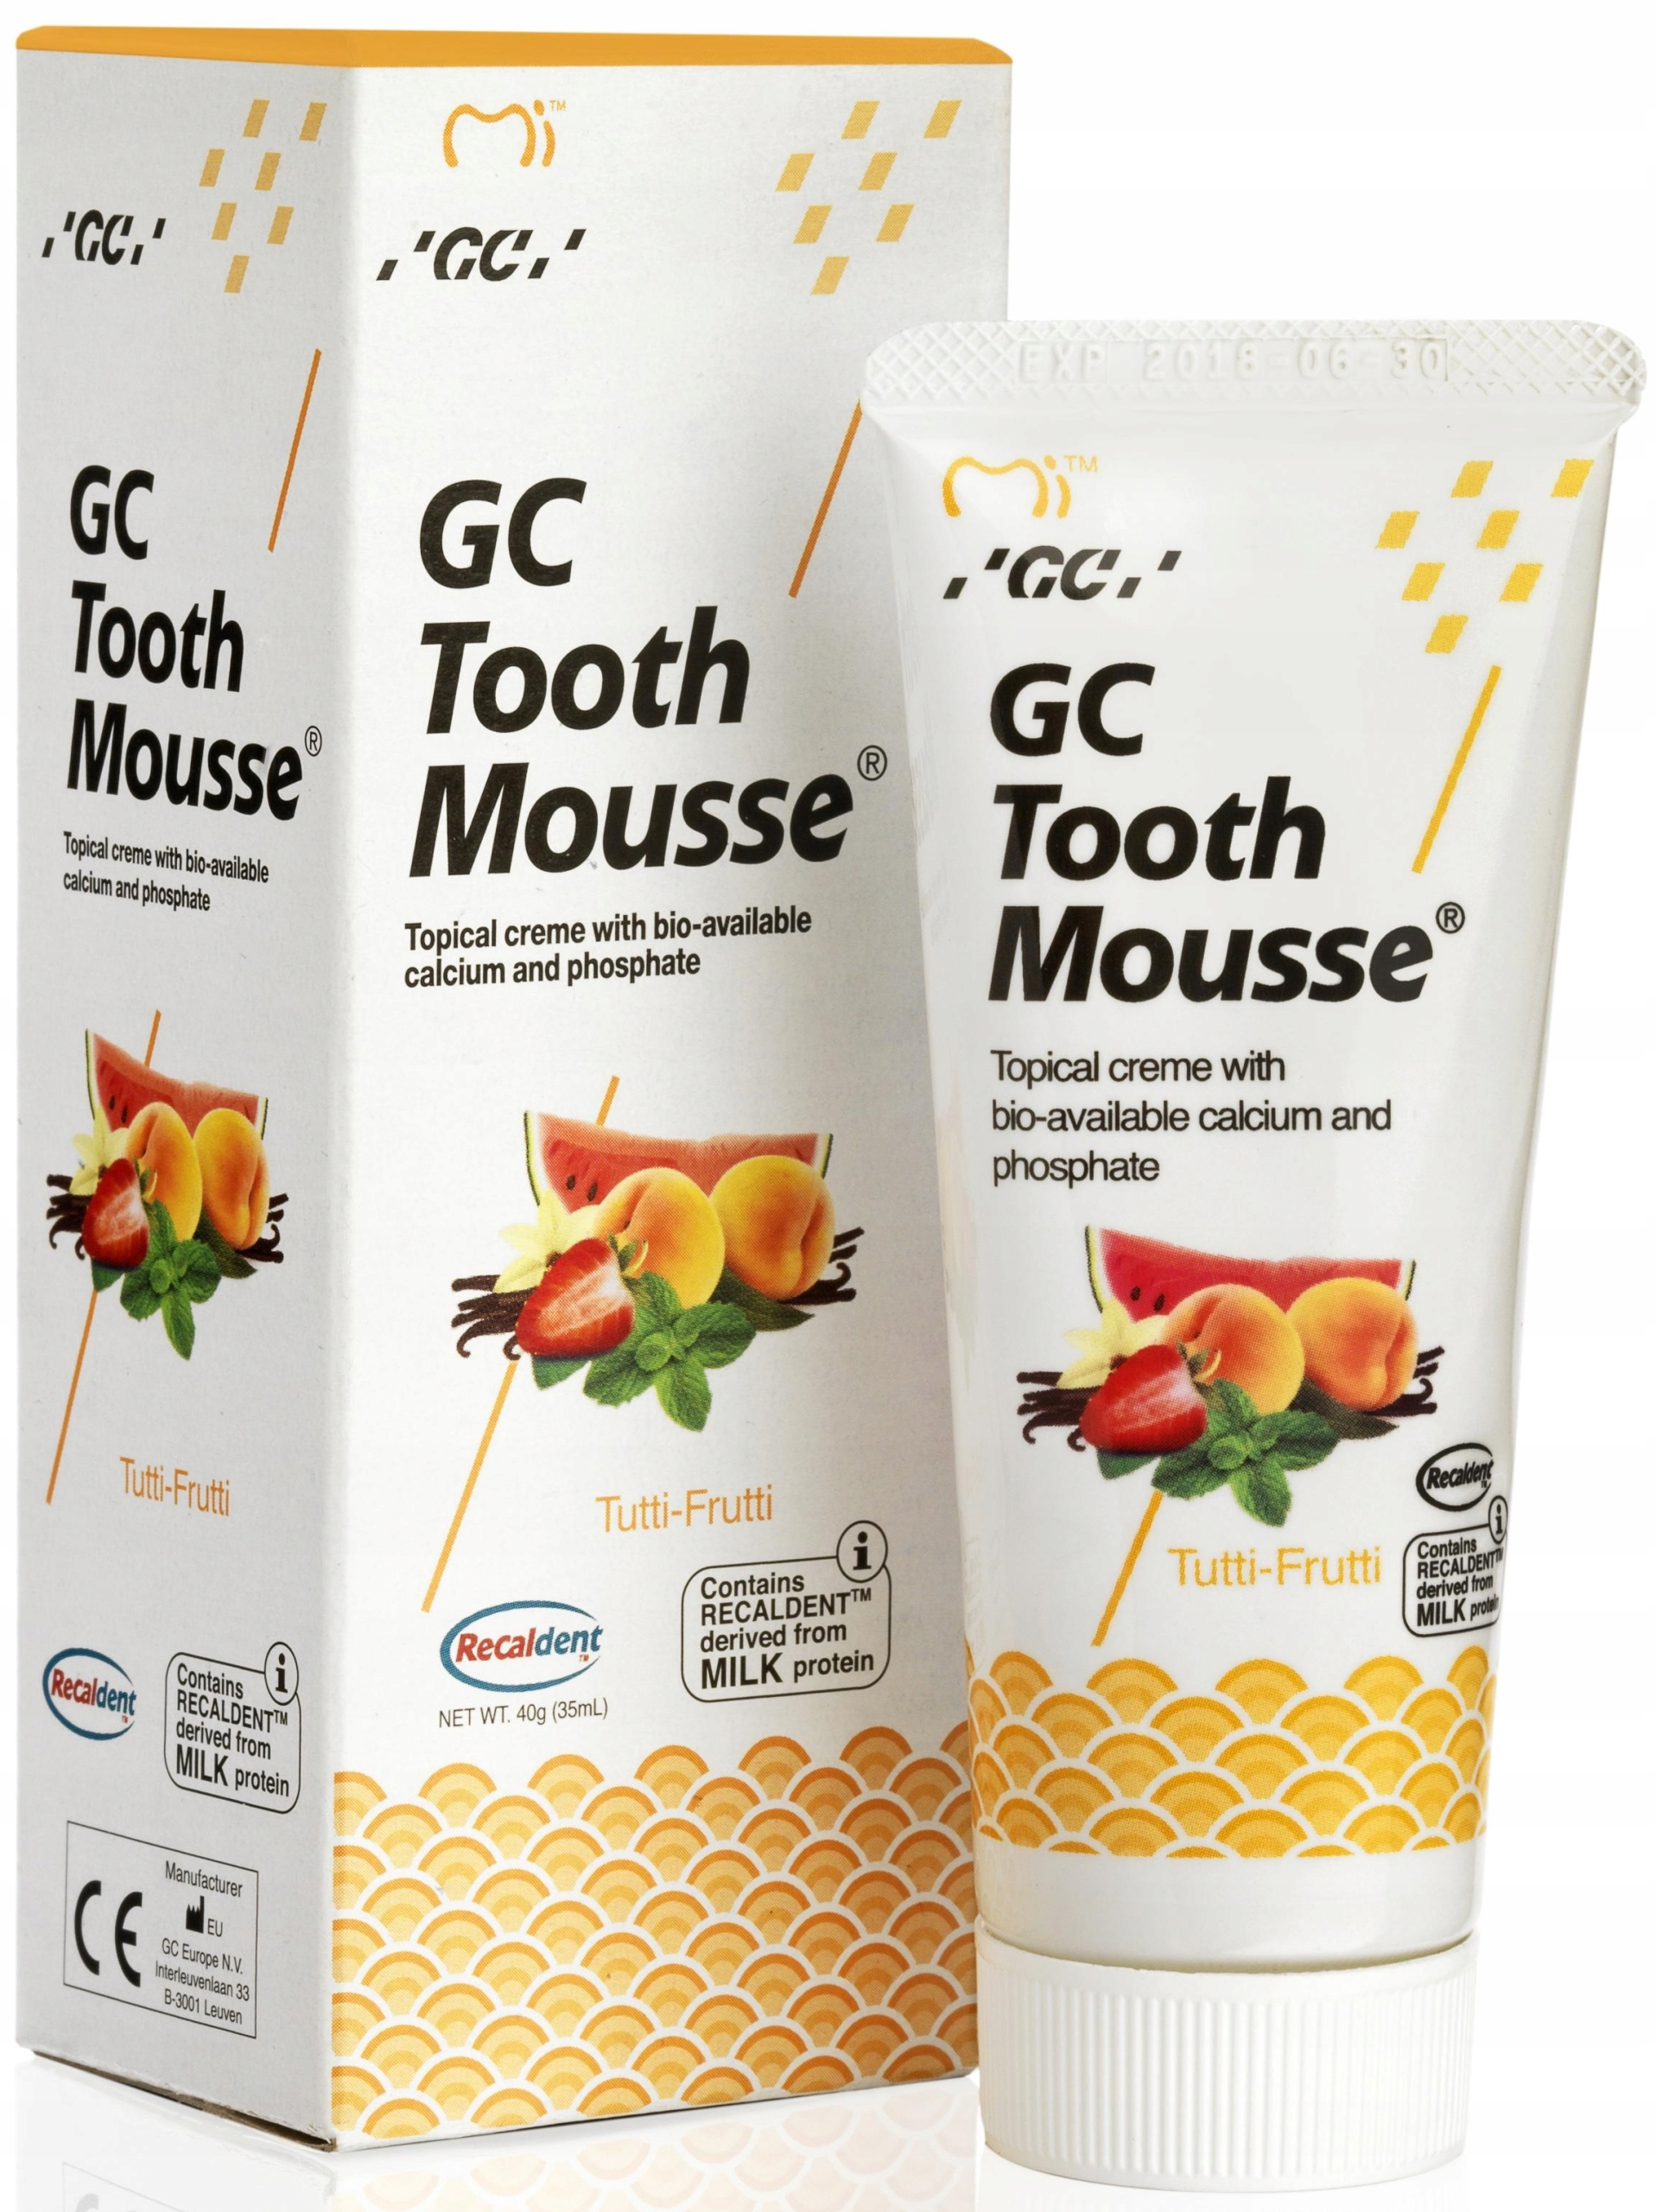 GC PASTA TOOTH MOUSSE 35ml All-Fruits FV